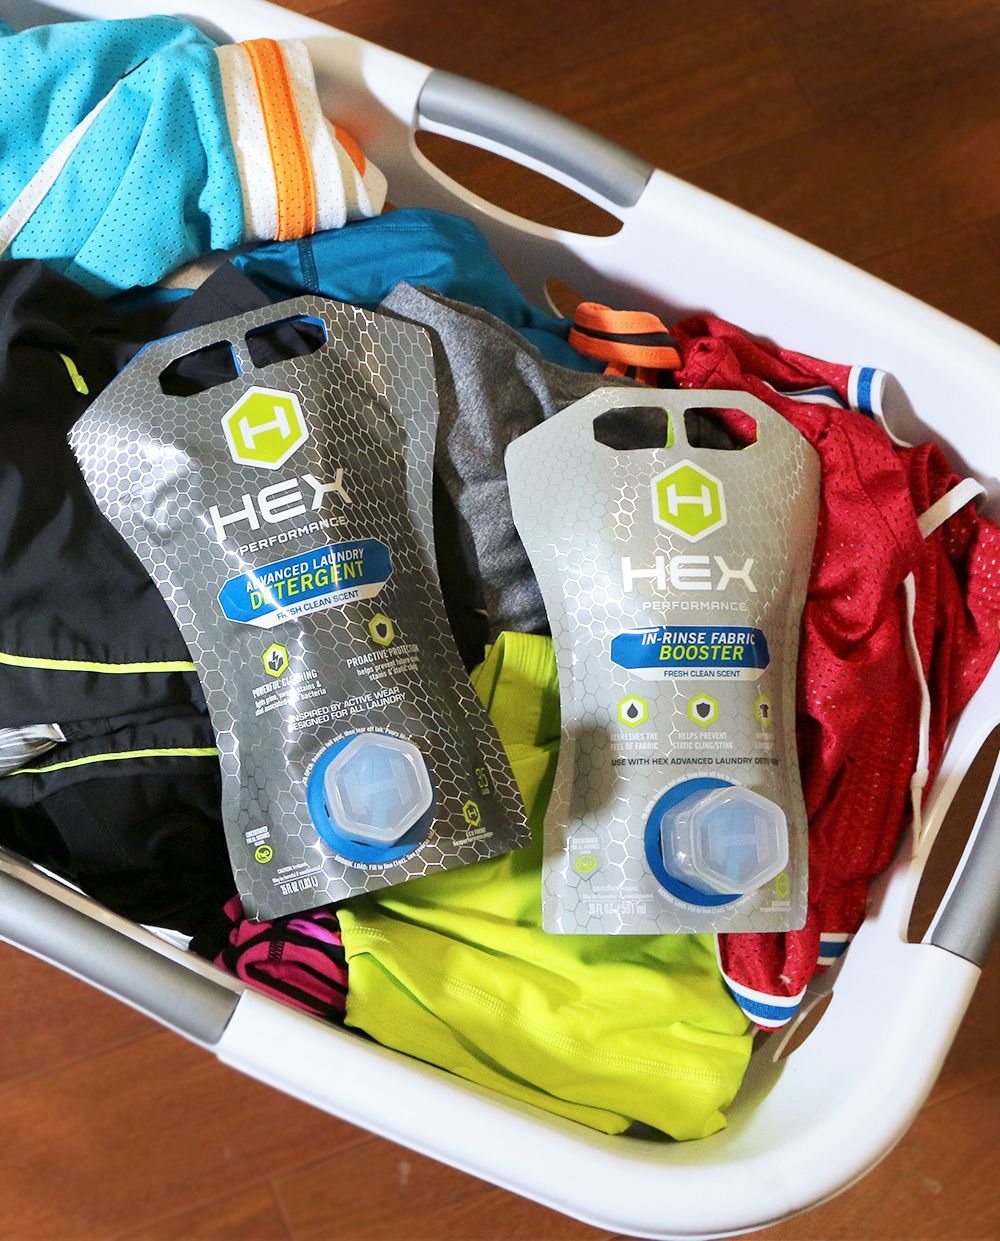 How To Wash Workout Clothes Best Detergent For Workout Clothes